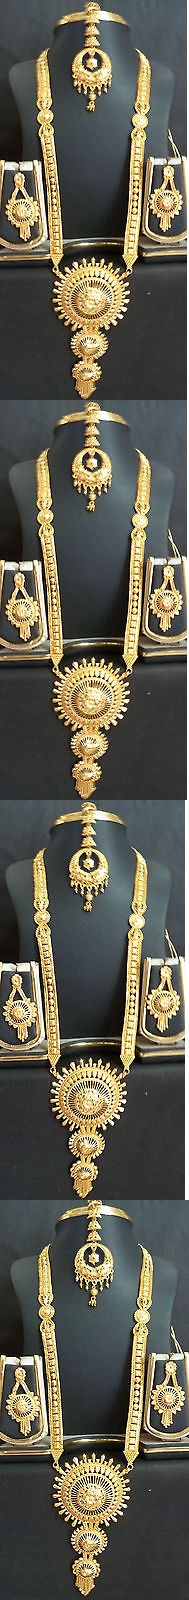 Other Wholesale Necklaces 56148: Wholsale Lot Of 5 Indian Wedding Gold Plated Necklace Earrings Tikka Jewelry Set BUY IT NOW ONLY: $115.0